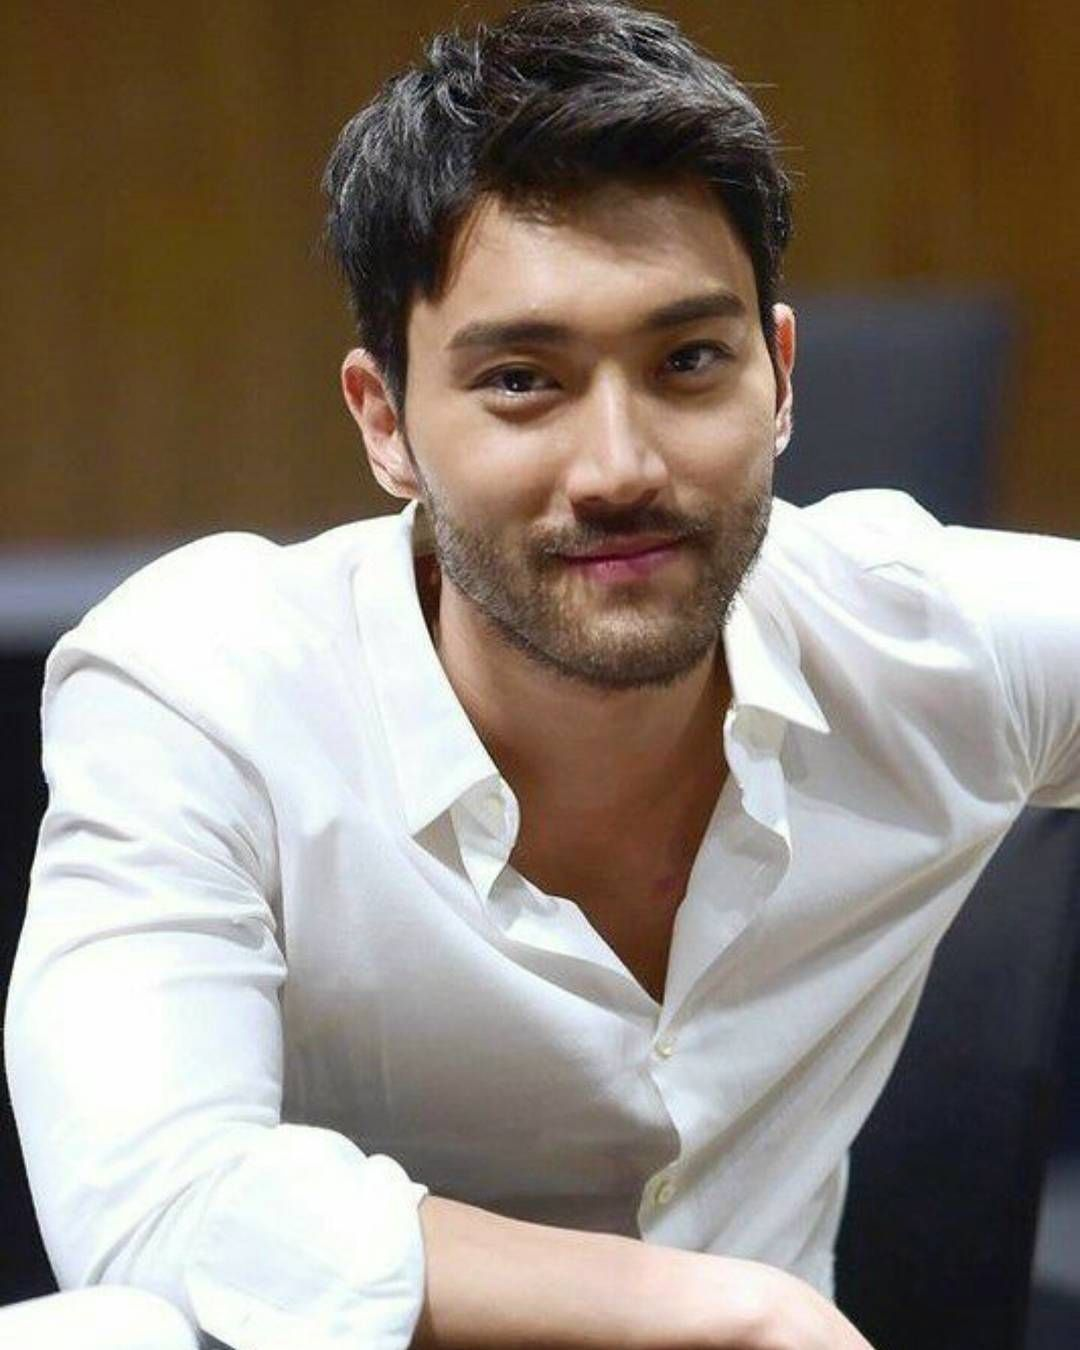 34 Best Asians With Beards Images On Pinterest: Siwon Is Sexy Oh God!! //His Beard #siwon #superjunior